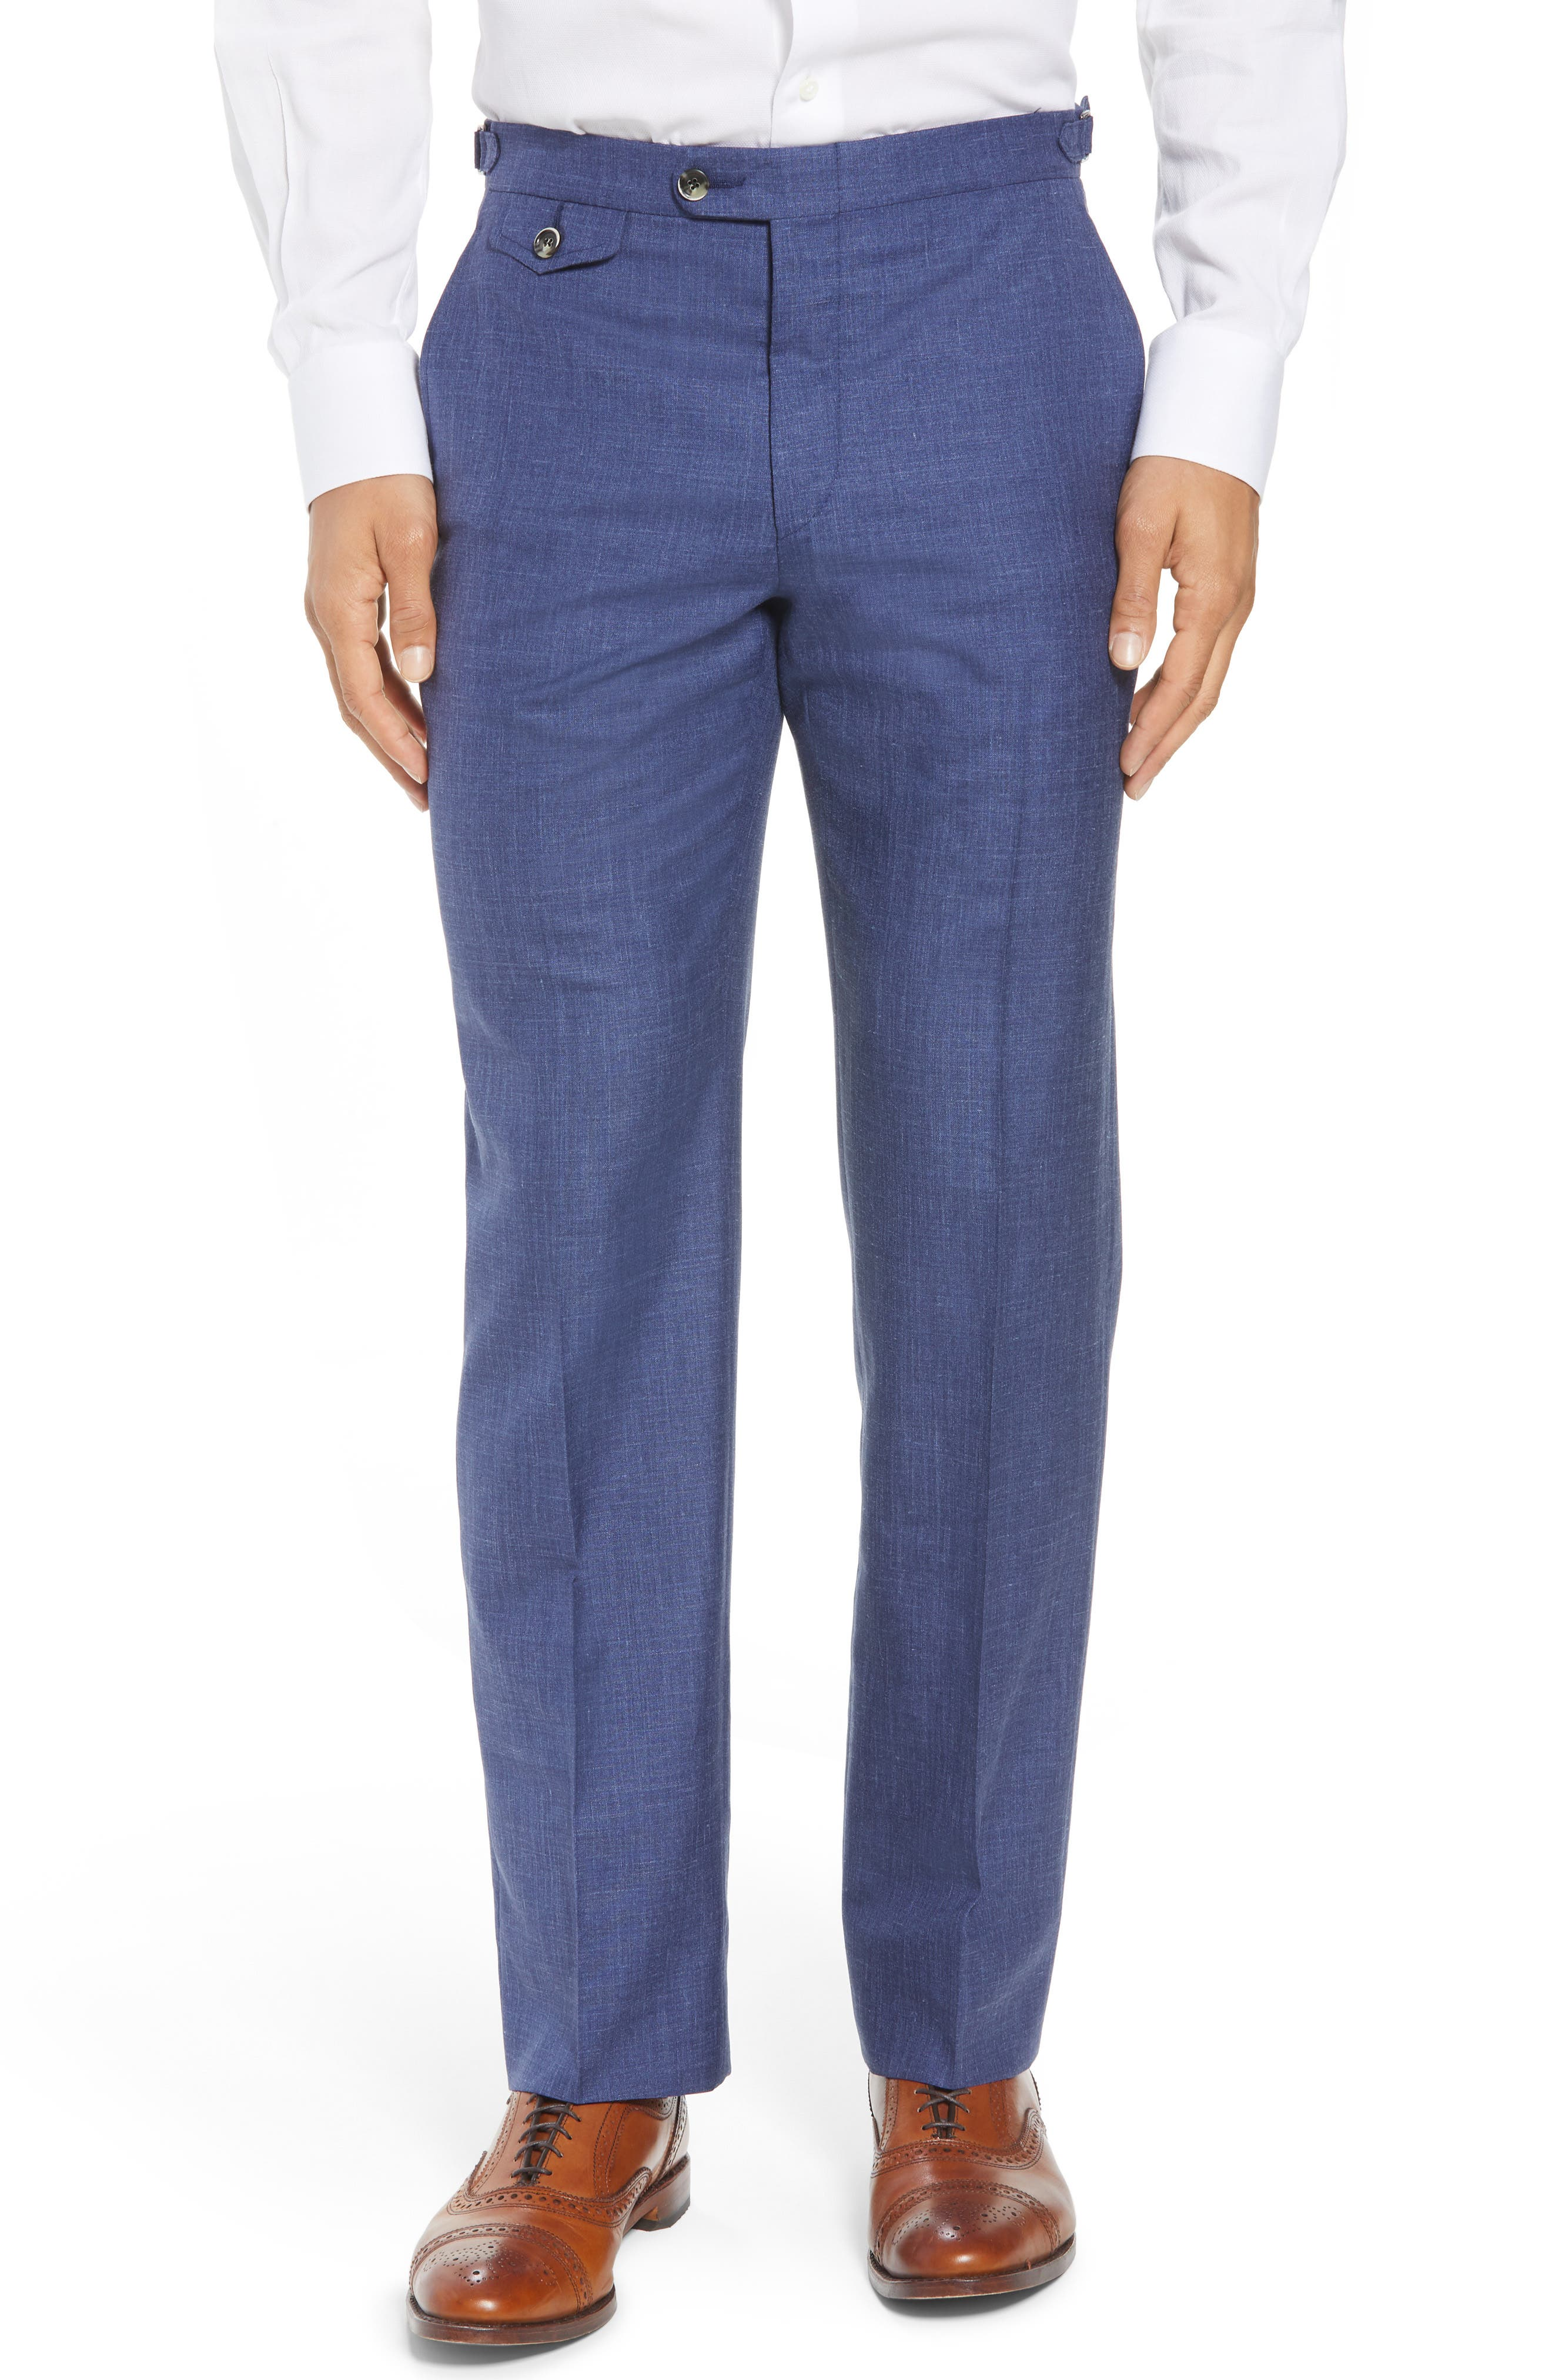 B Fit Flat Front Solid Wool Blend Trousers,                             Main thumbnail 1, color,                             BLUE SOLID